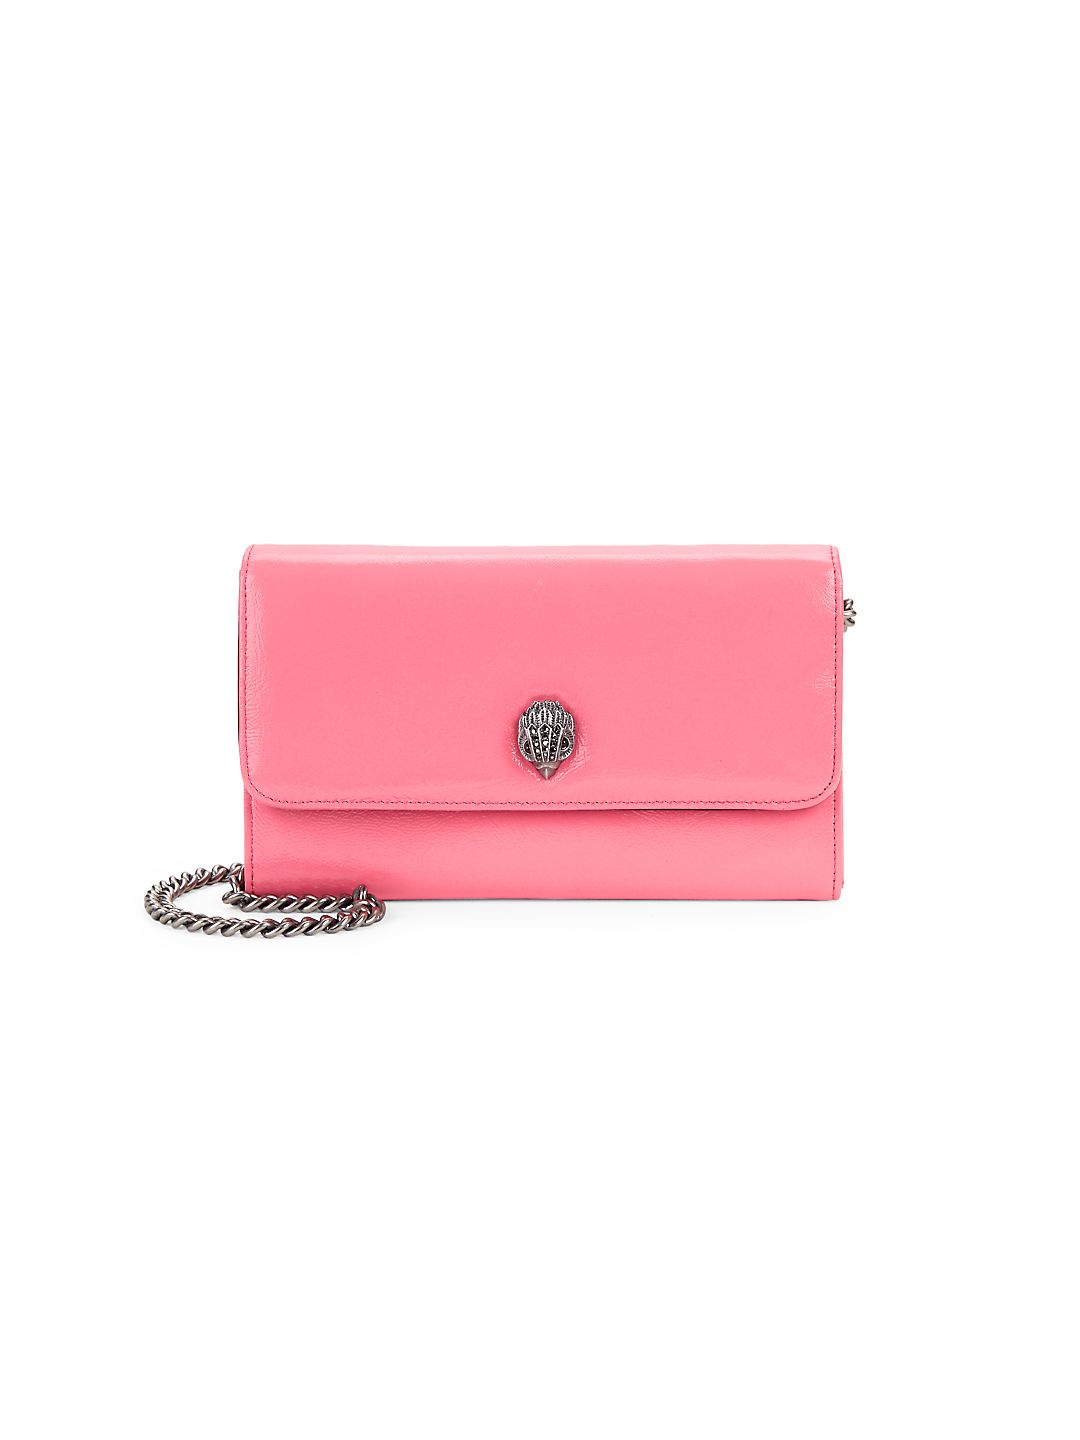 Kensington Leather Crossbody Bag